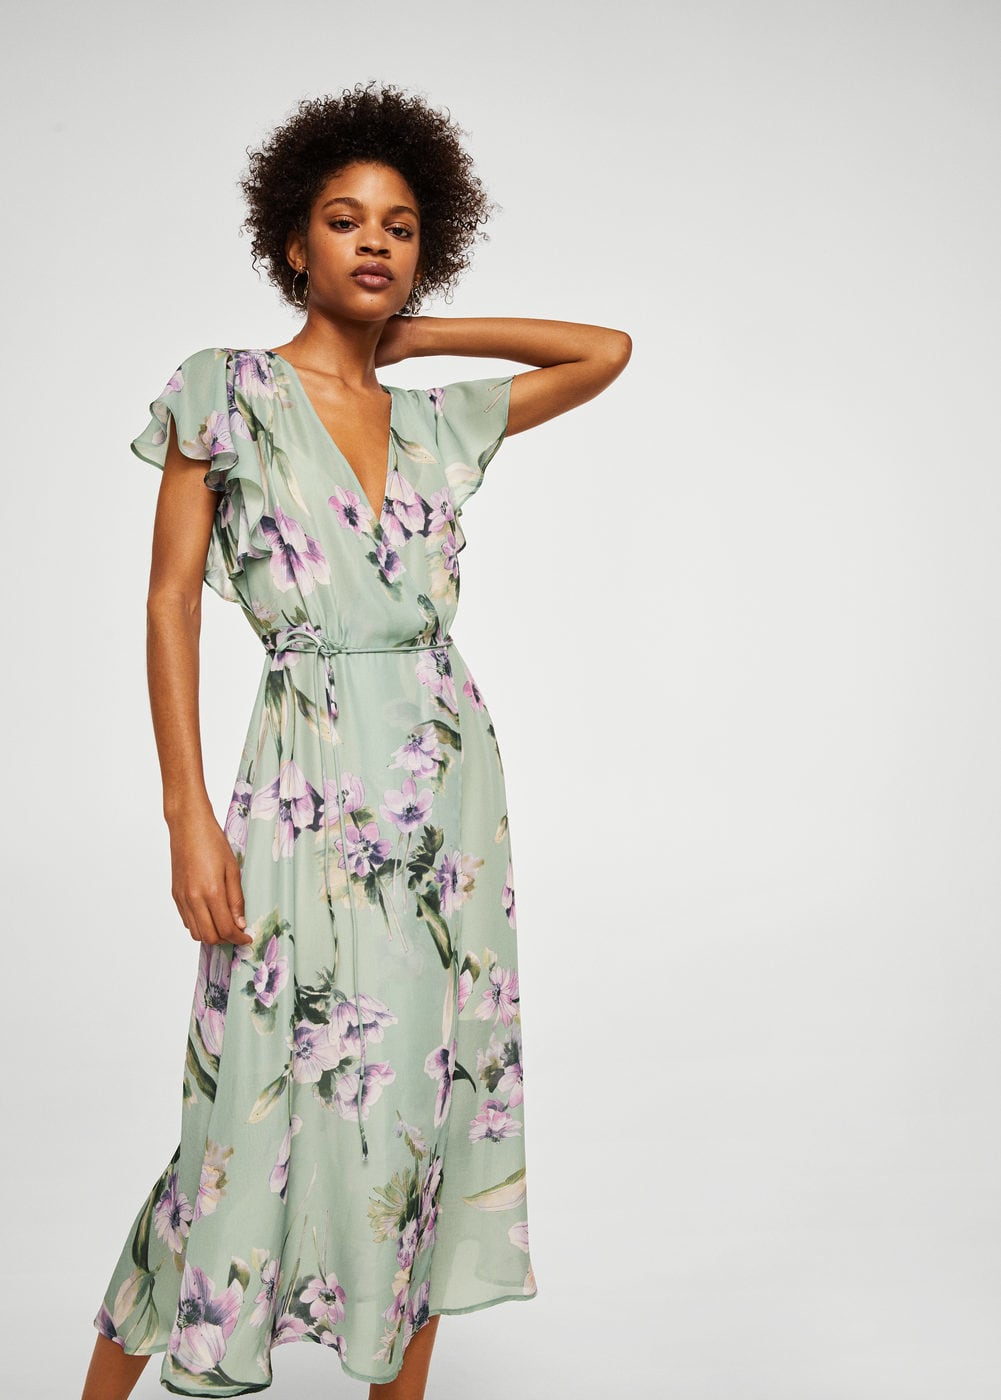 This €60 Mango dress was made to be worn to a summer party with ...